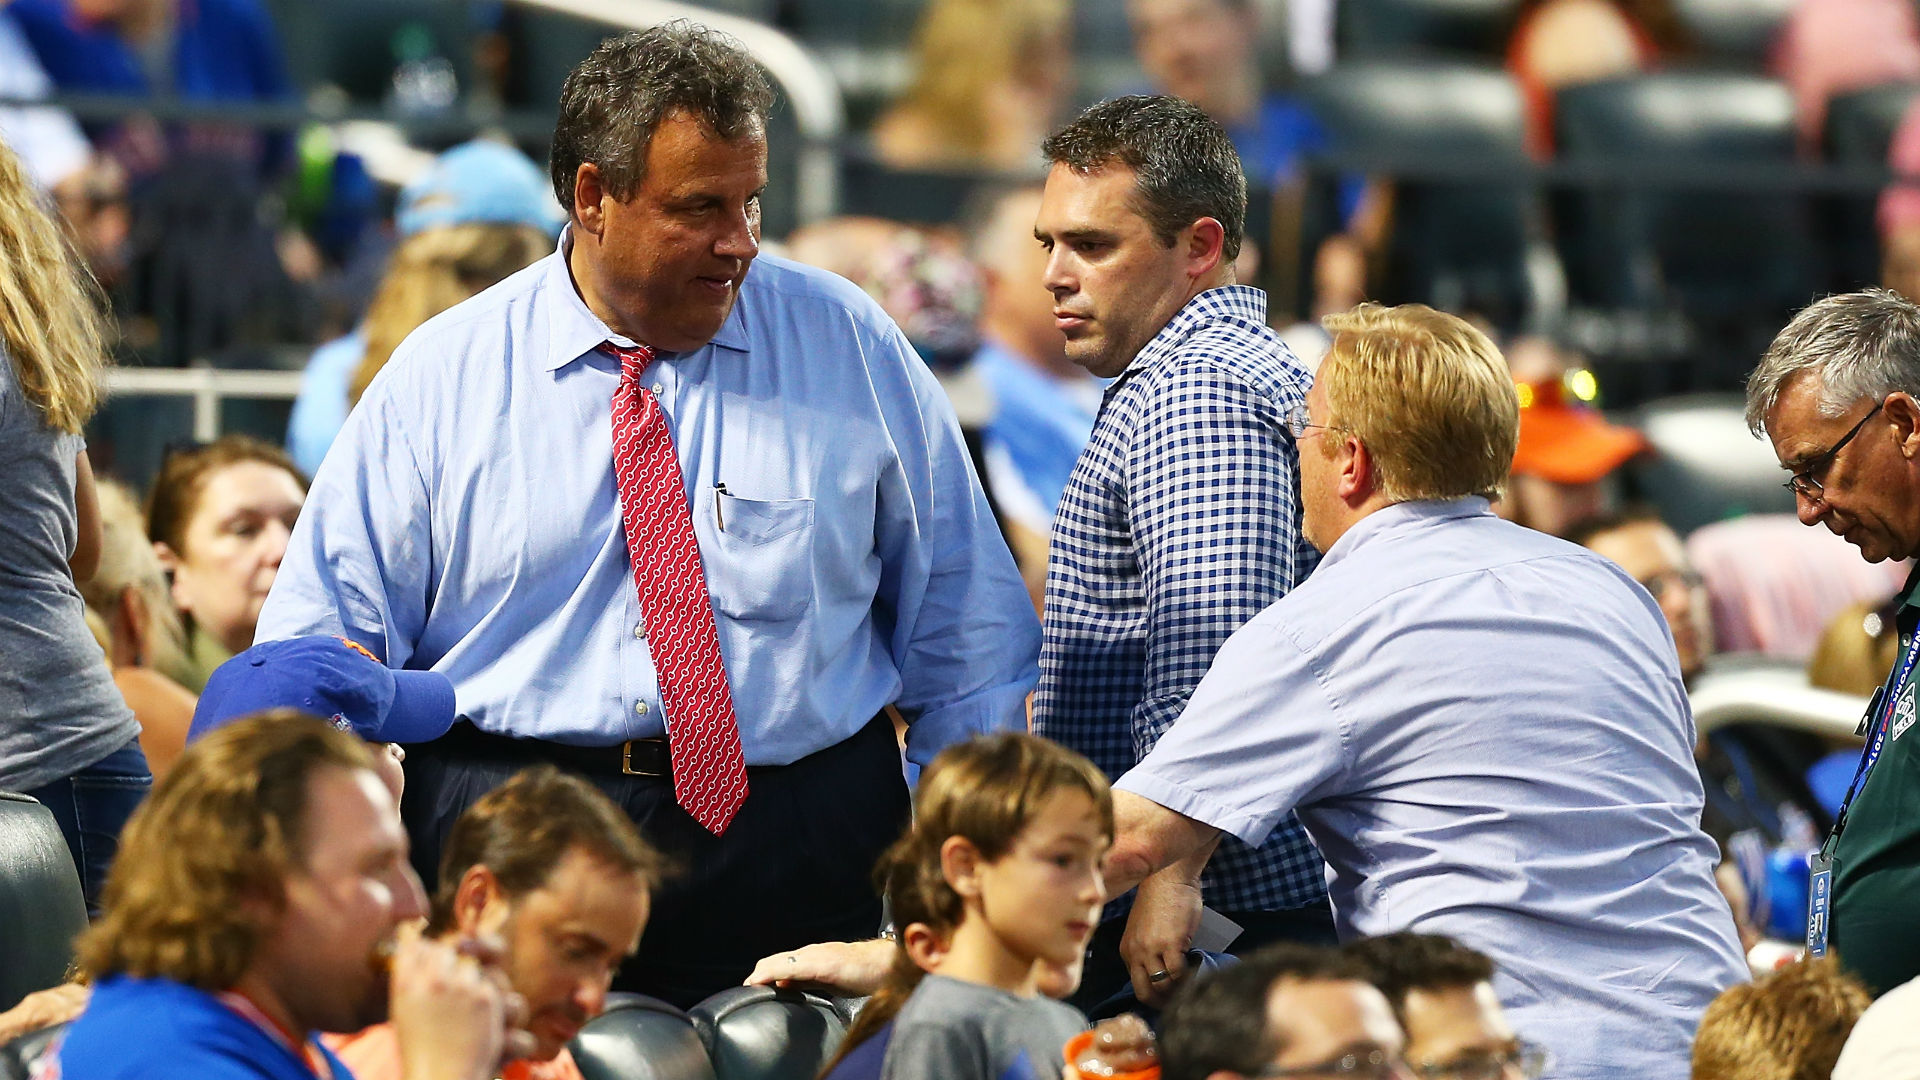 Chris Christie Gets In Fan's Face At The Cubs-Brewers Game